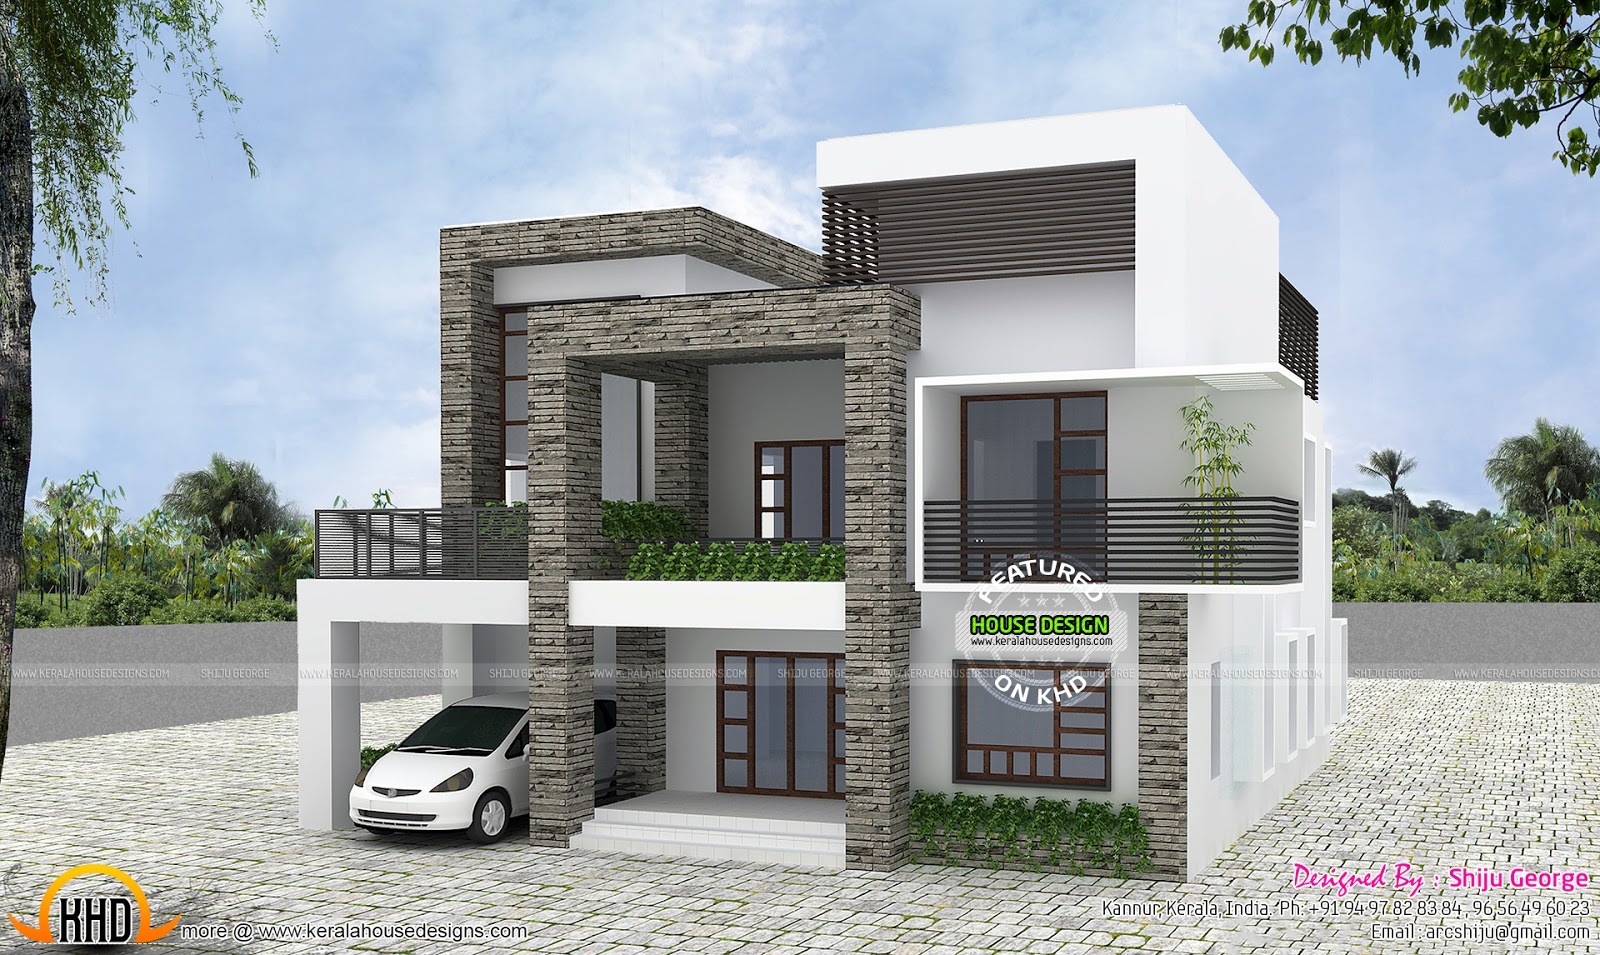 One house in 3 different styles with plan keralahousedesigns for Different house styles pictures